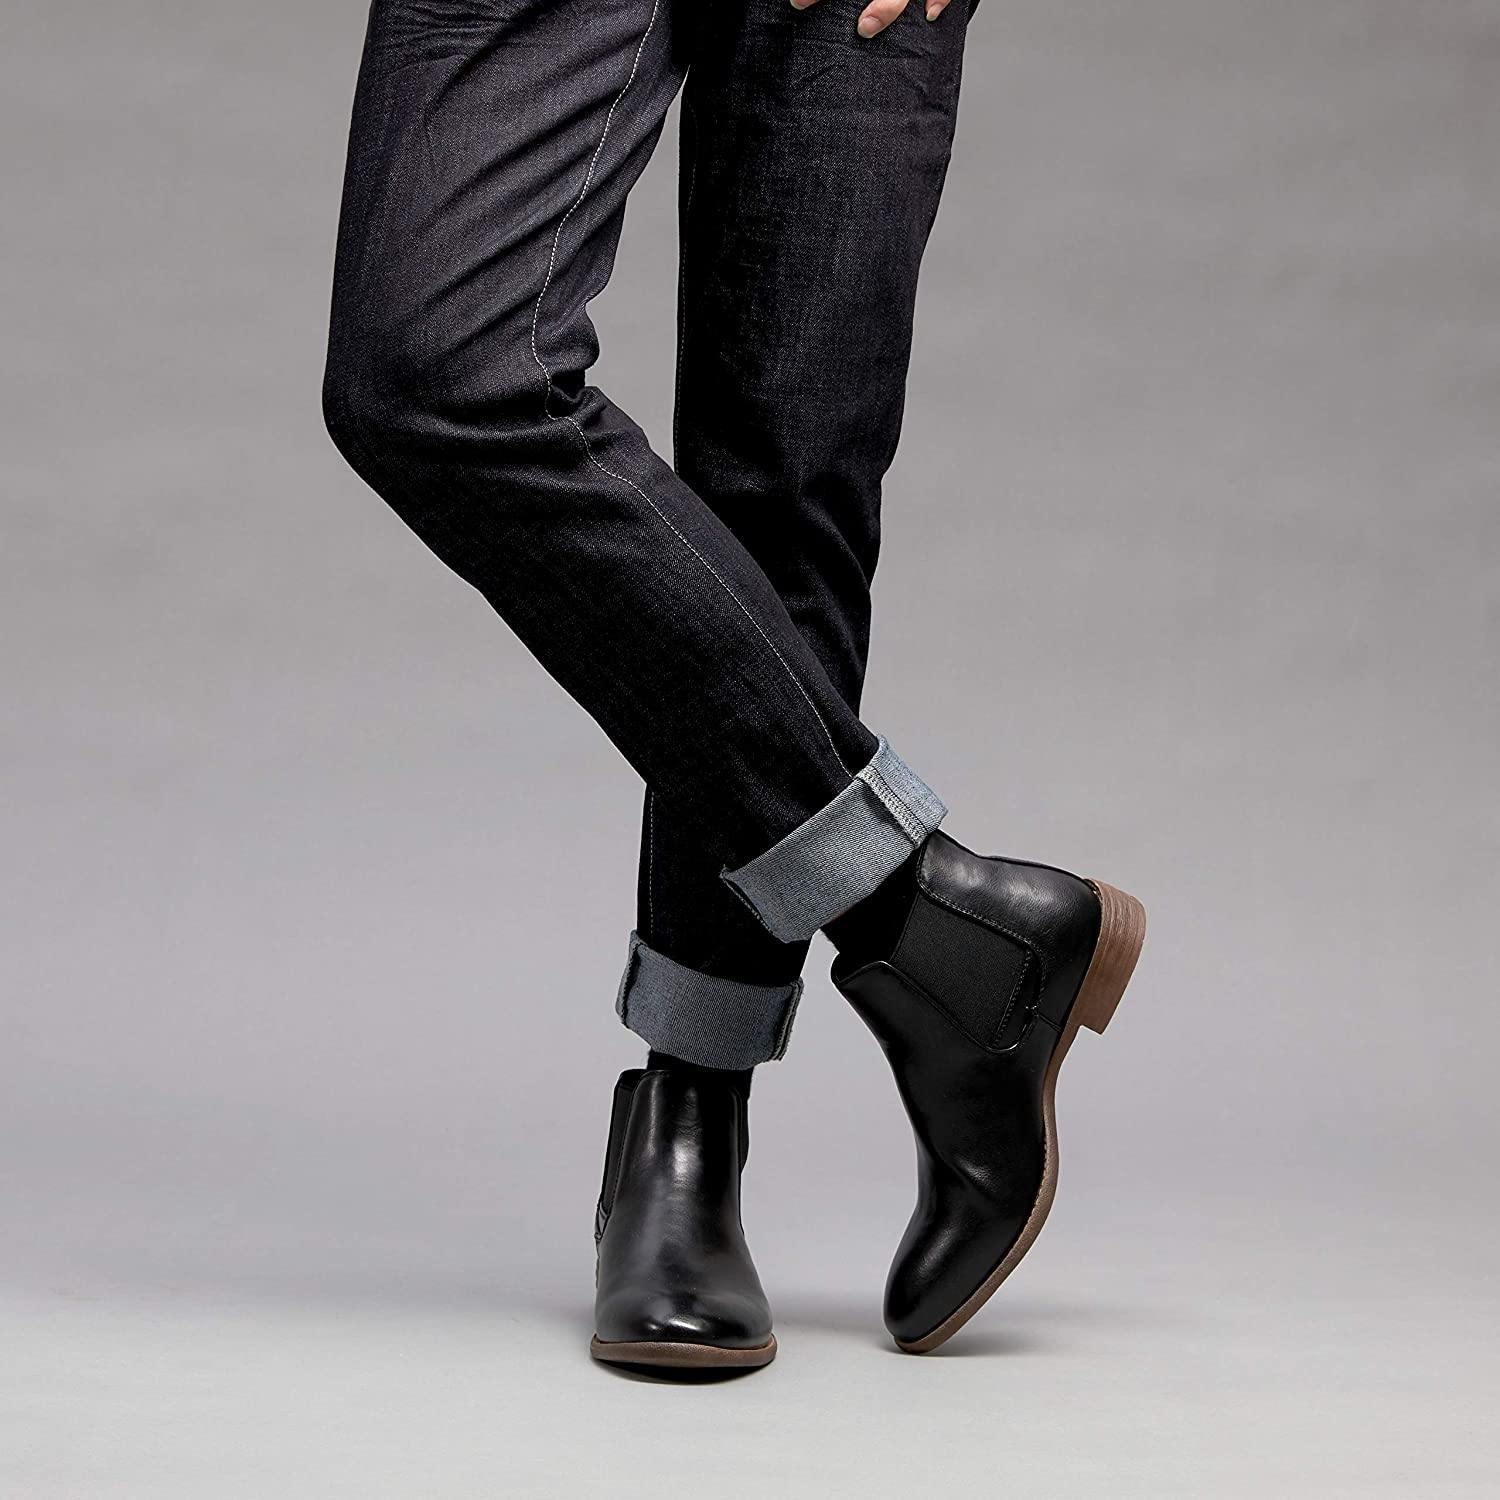 Men's Chelsea Boots Lightweight Casual | JOUSEN - Top shoes club